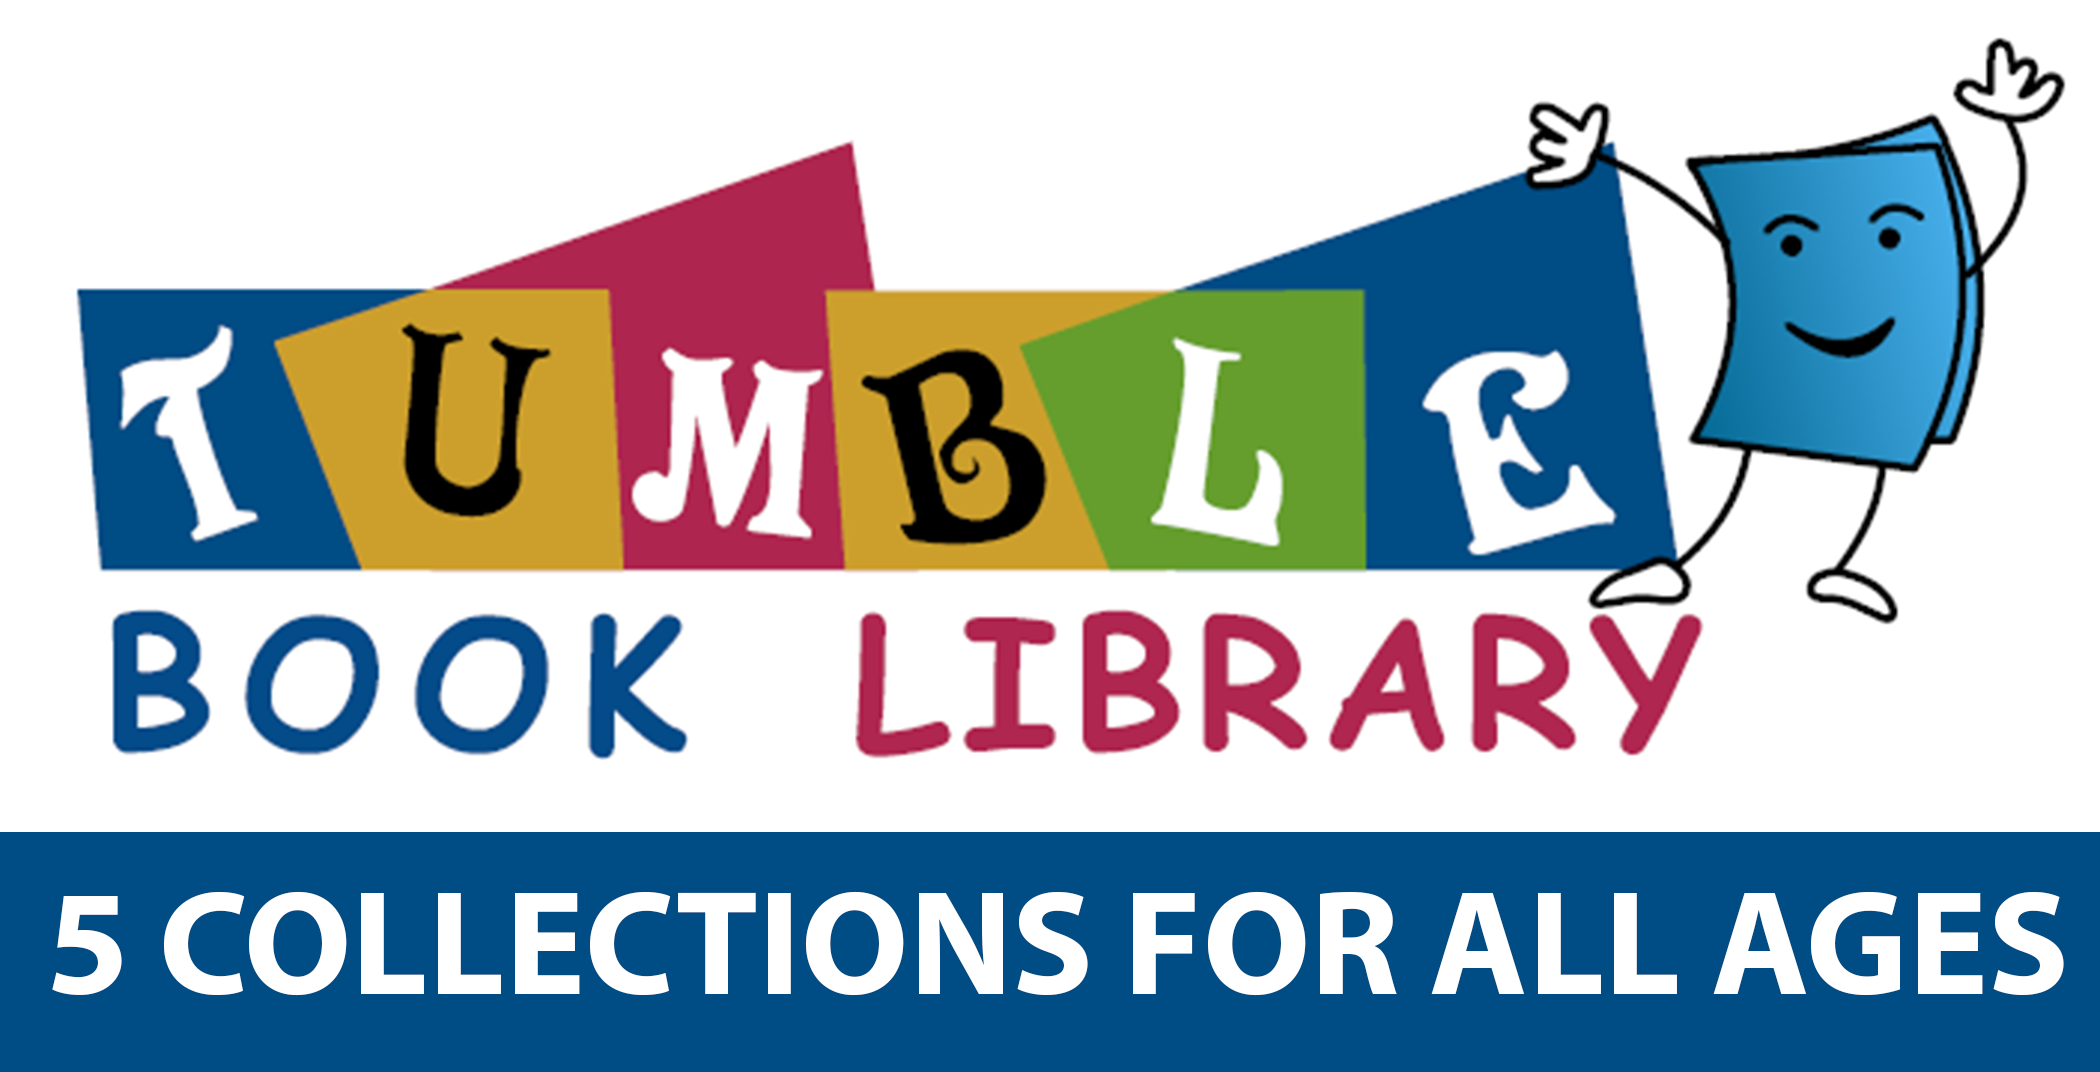 Tumblebooks collection logo